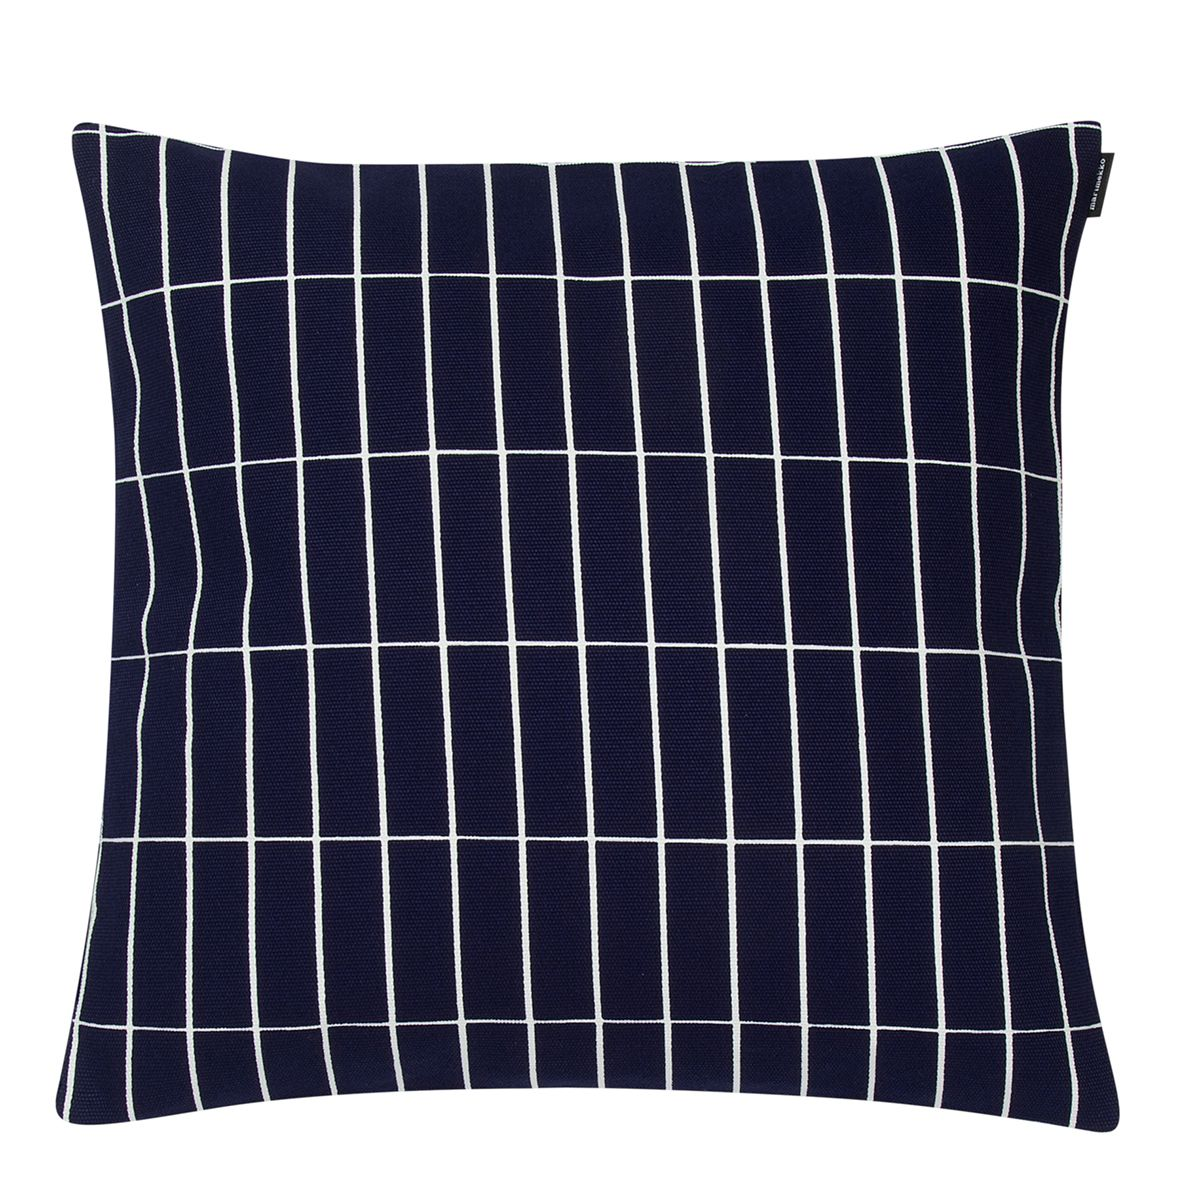 Magnificent Marimekko Tiiliskivi Navy White Small Throw Pillow Inzonedesignstudio Interior Chair Design Inzonedesignstudiocom